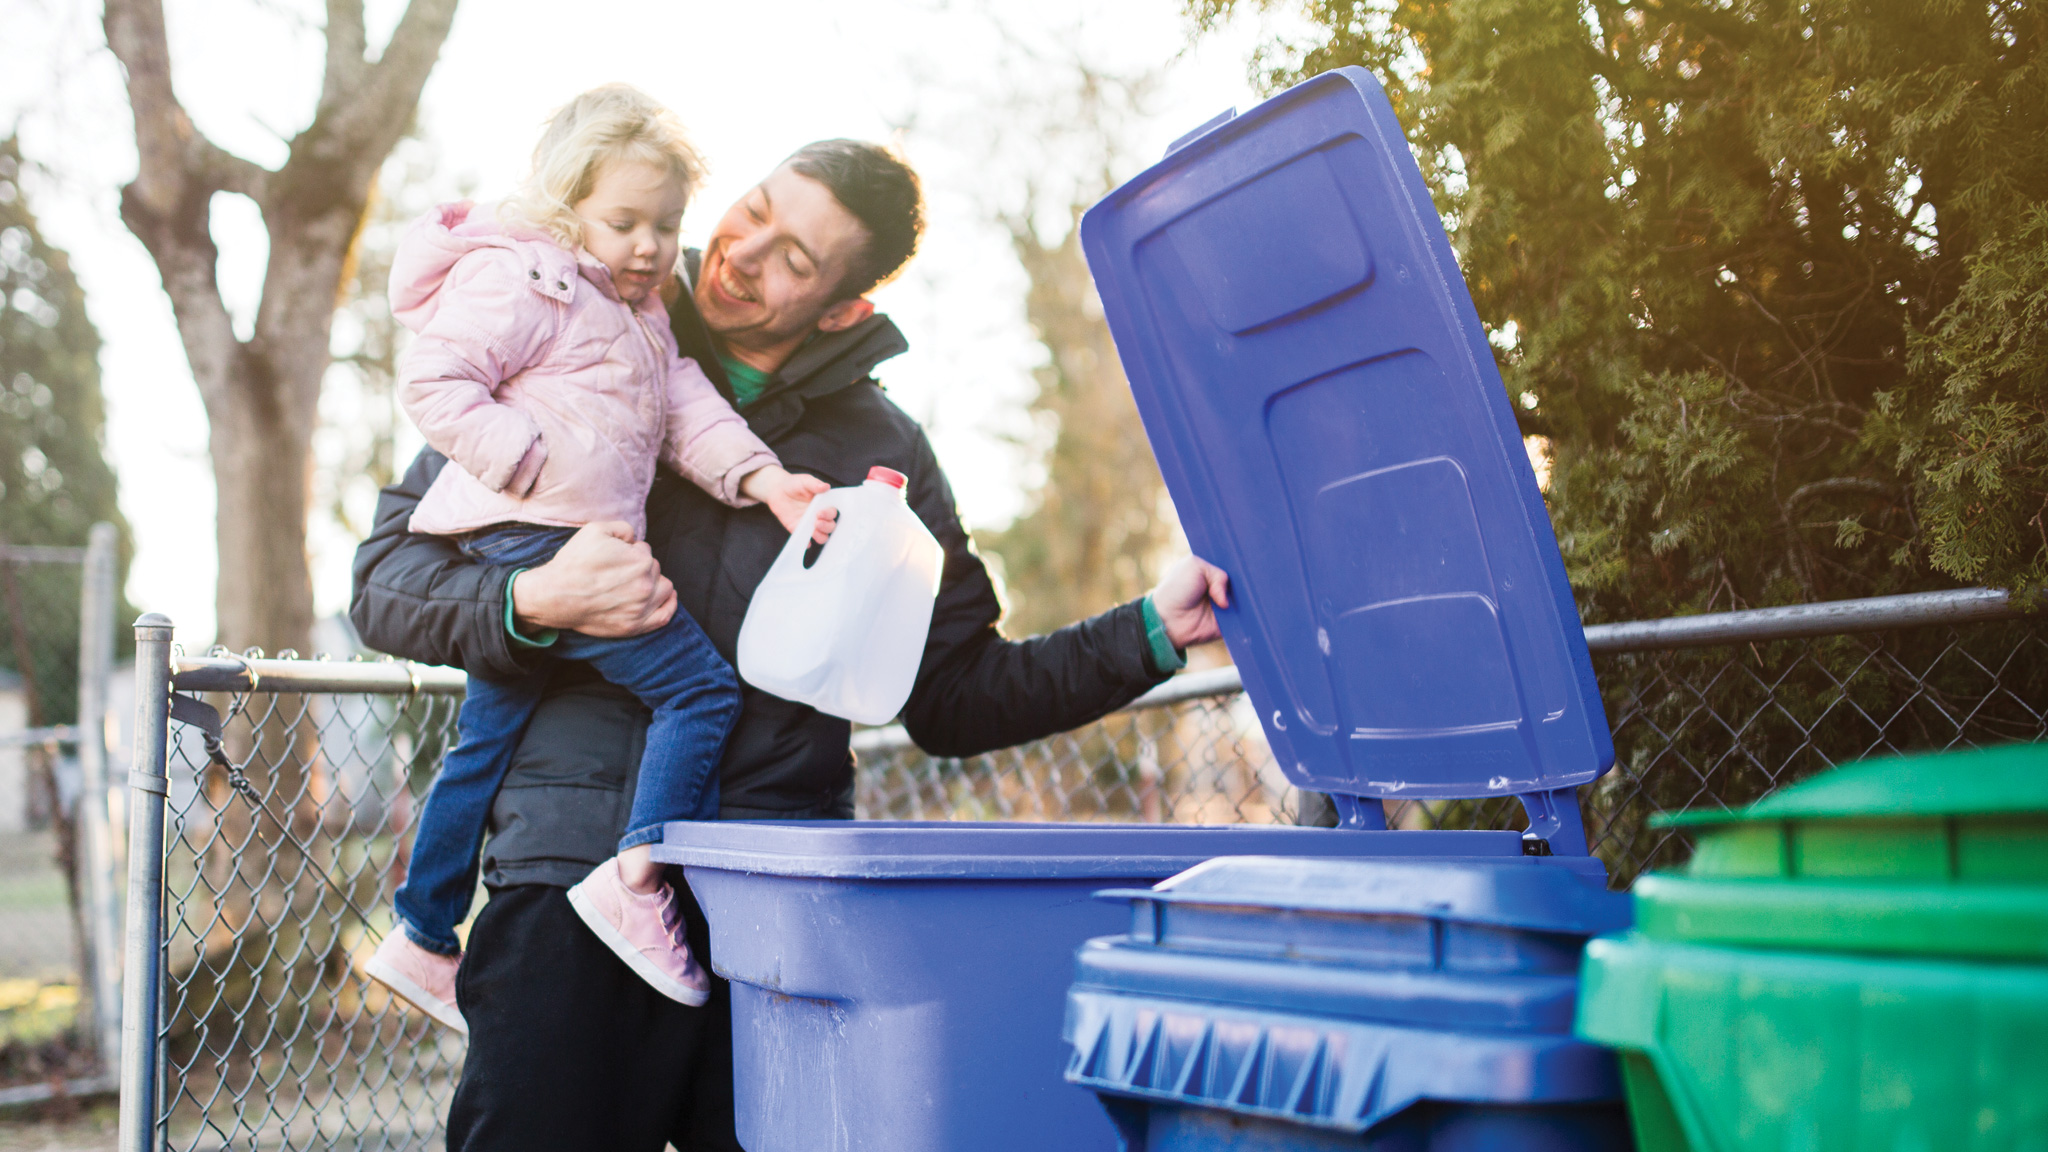 Father helps his daughter recycle a plastic bottle